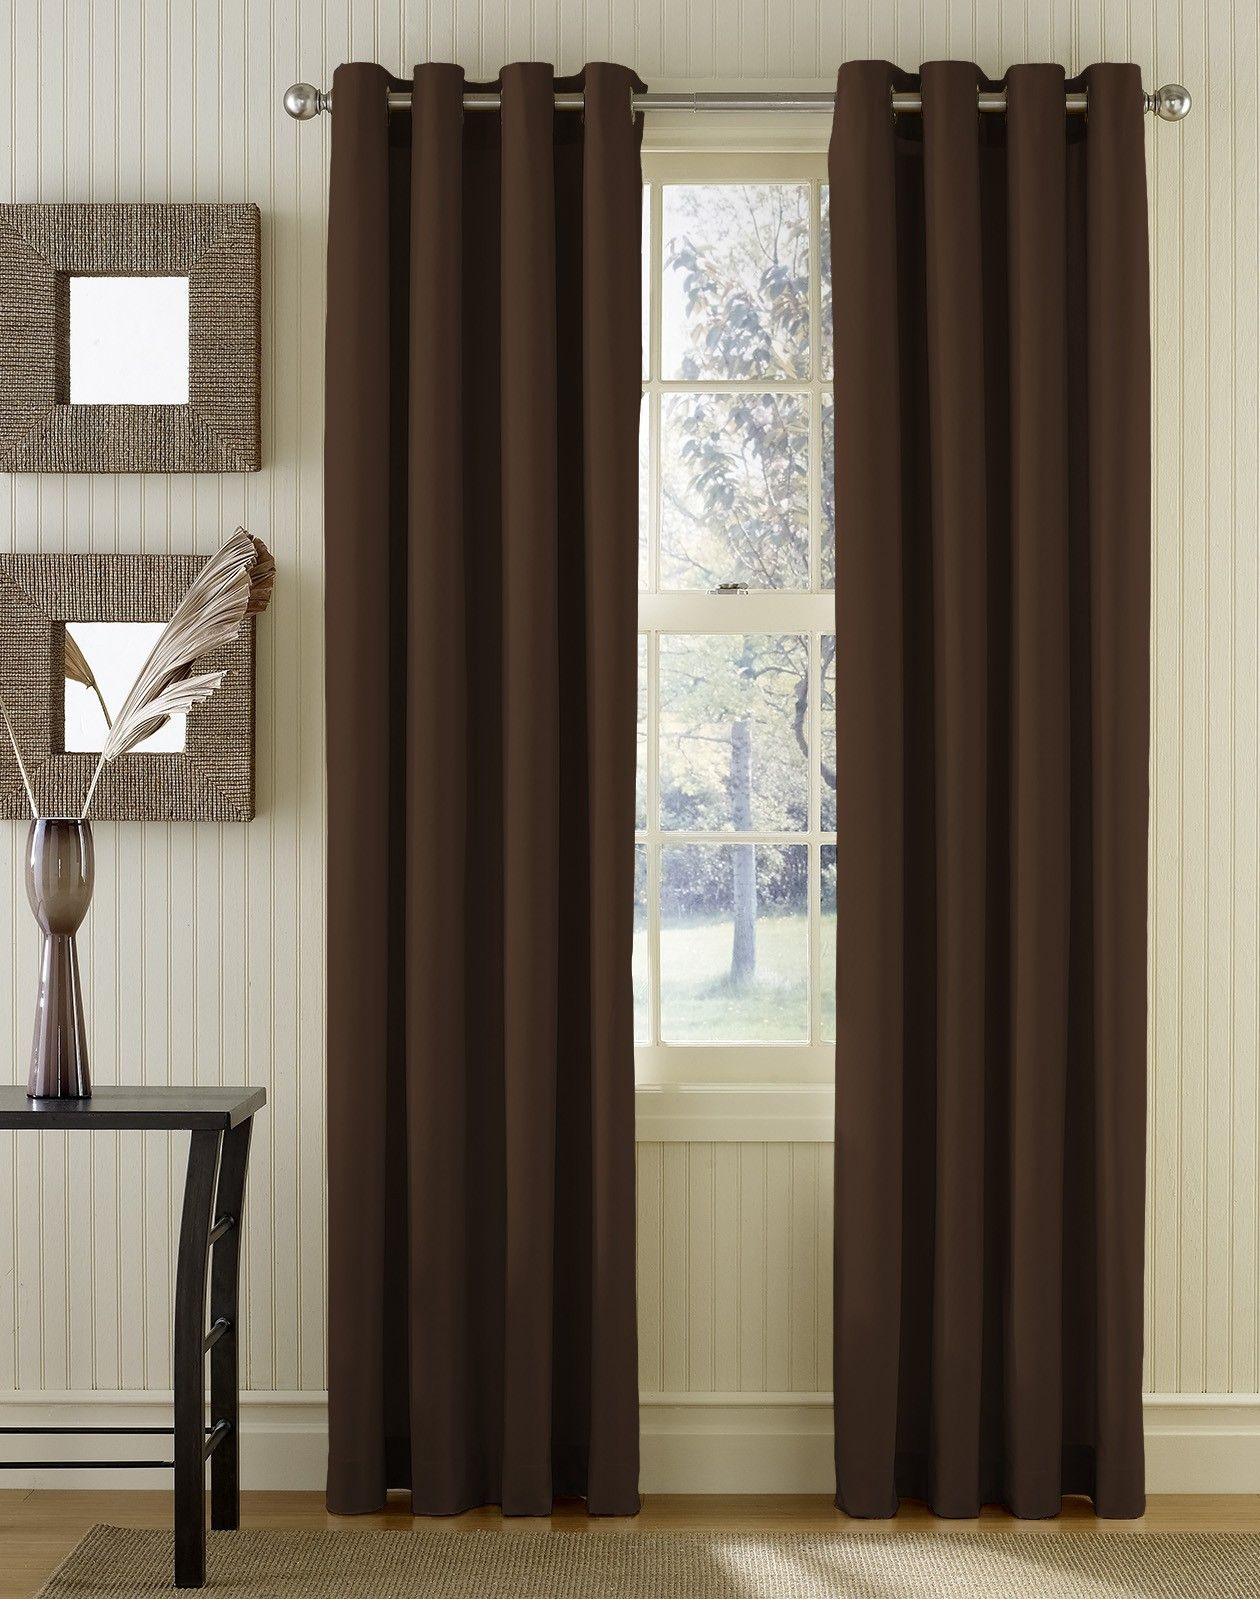 Window Treatments Google Search Curtains Living Room Curtains